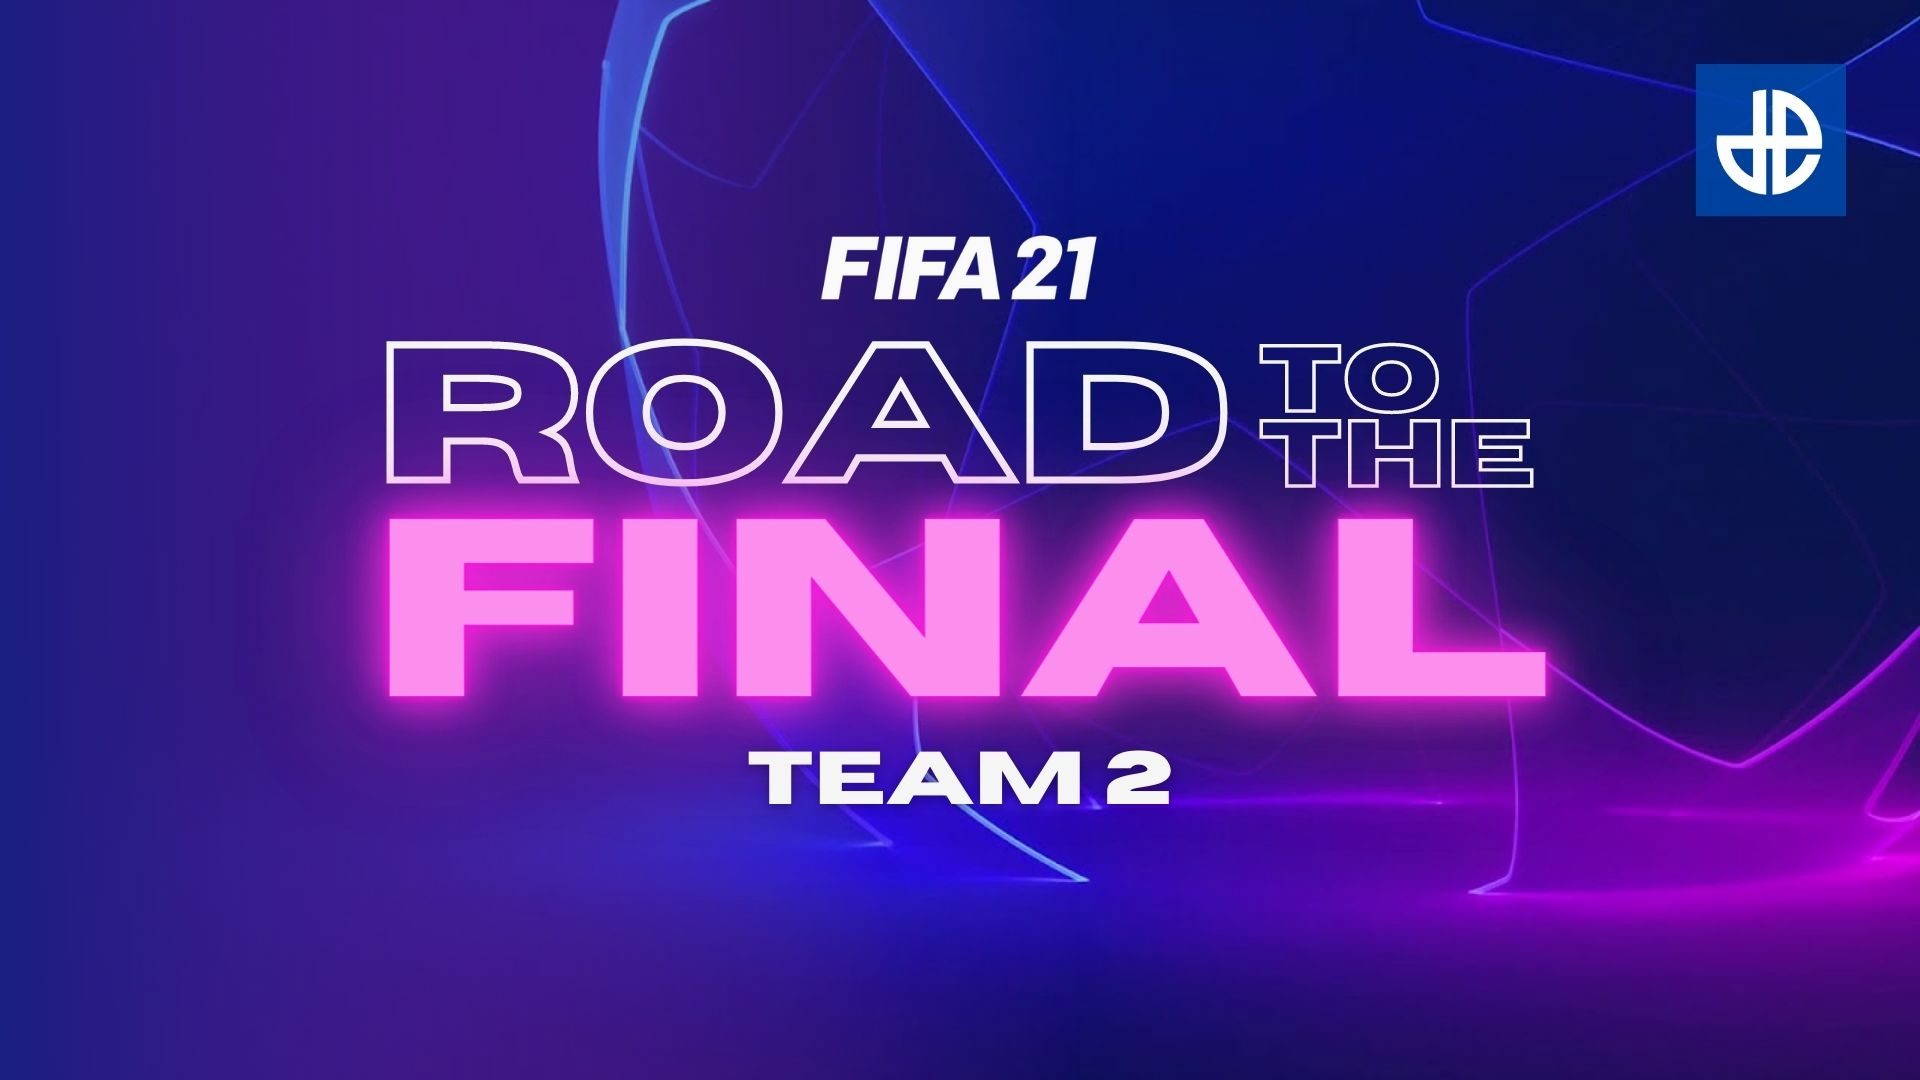 fifa 21 road to the final team 2 live start time ucl rttf leaks predictions dexerto fifa 21 road to the final team 2 live